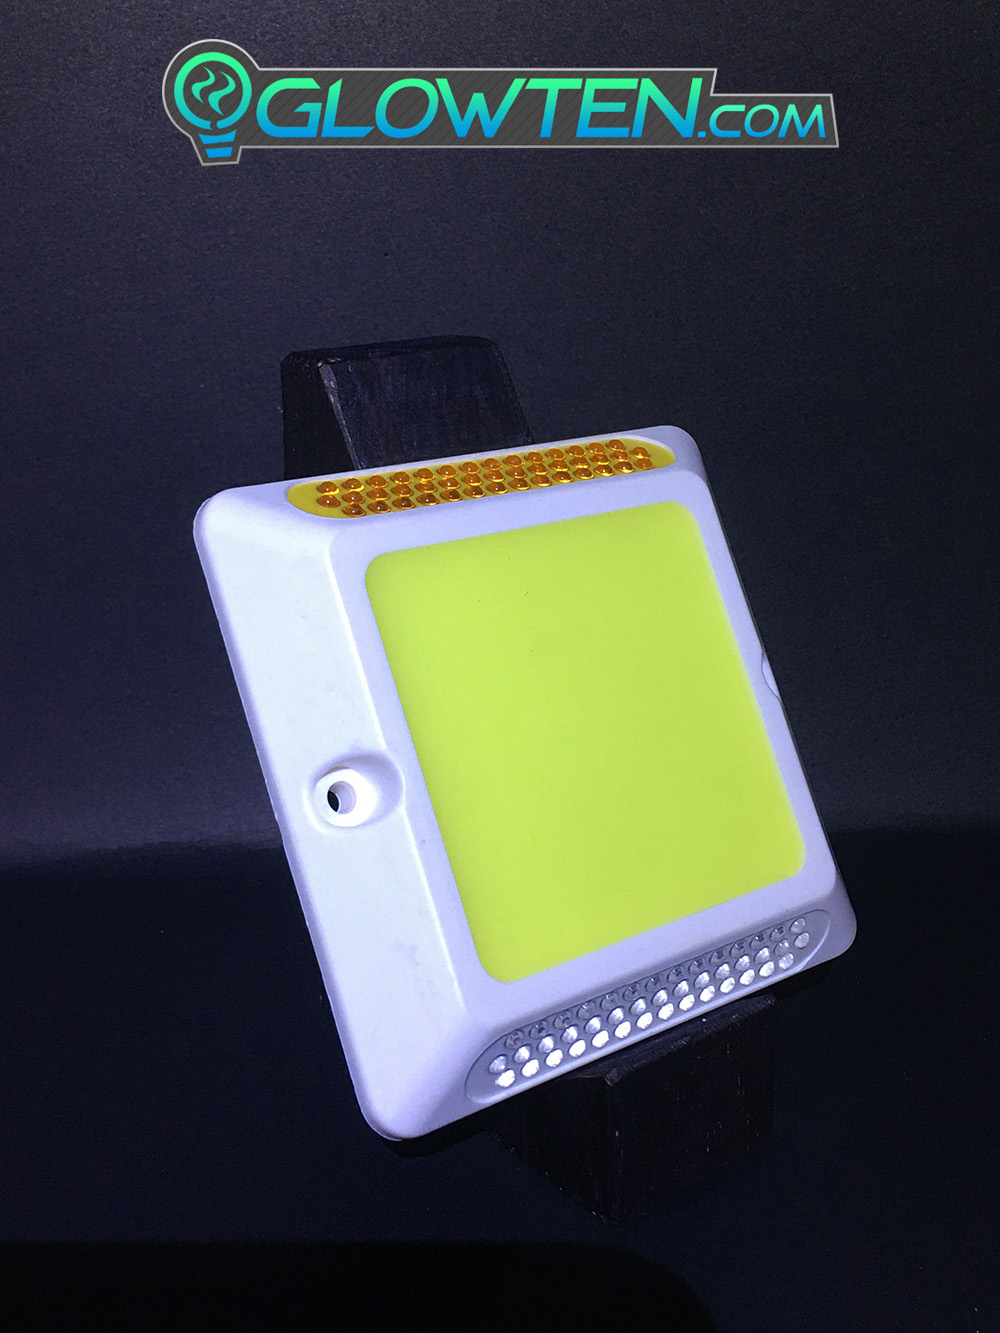 GLOWTEN.com - Glow in the Dark Shiny GREEN SQUARE BLOCK Riser Luminous Reflective Road Traffic Pavement Marker Road Sign Reflector ABS Body Material Road Markings Botts' dots, cat's eyes Bump Green Glow Sign picture photo cap preview pic 6